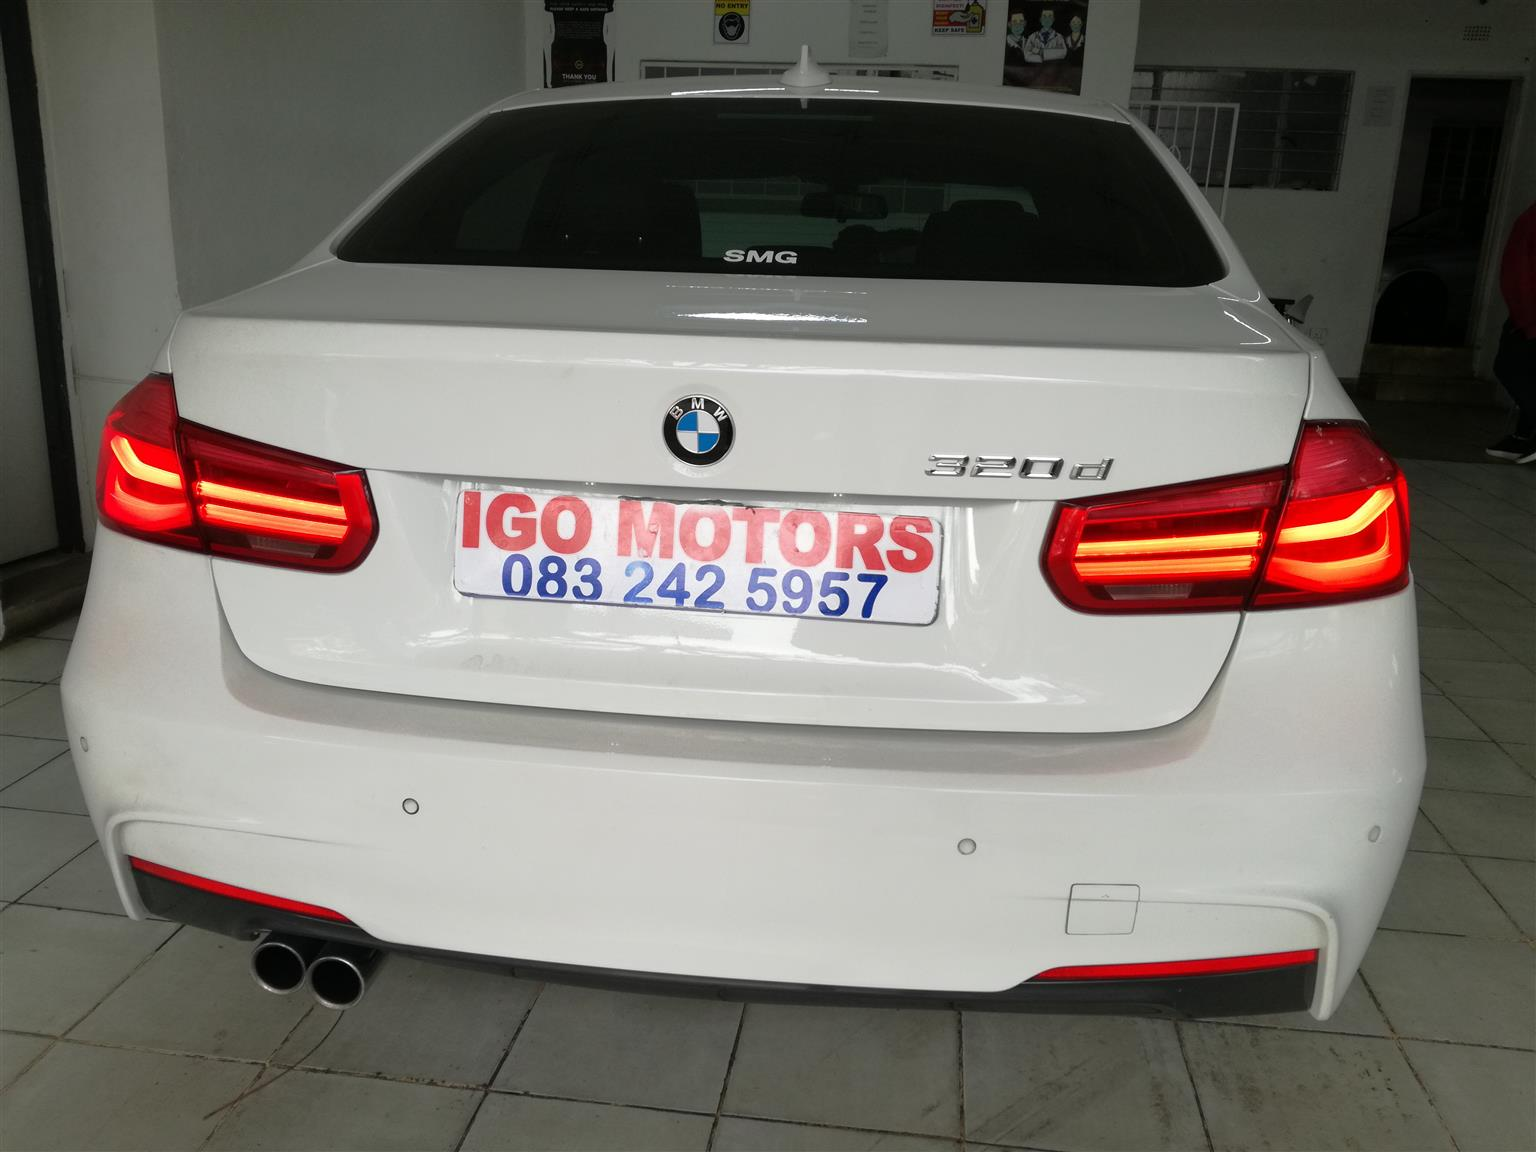 2017 BMW 320d Auto MSport 112,000 R328,000 Mechanically perfect with Sunroof